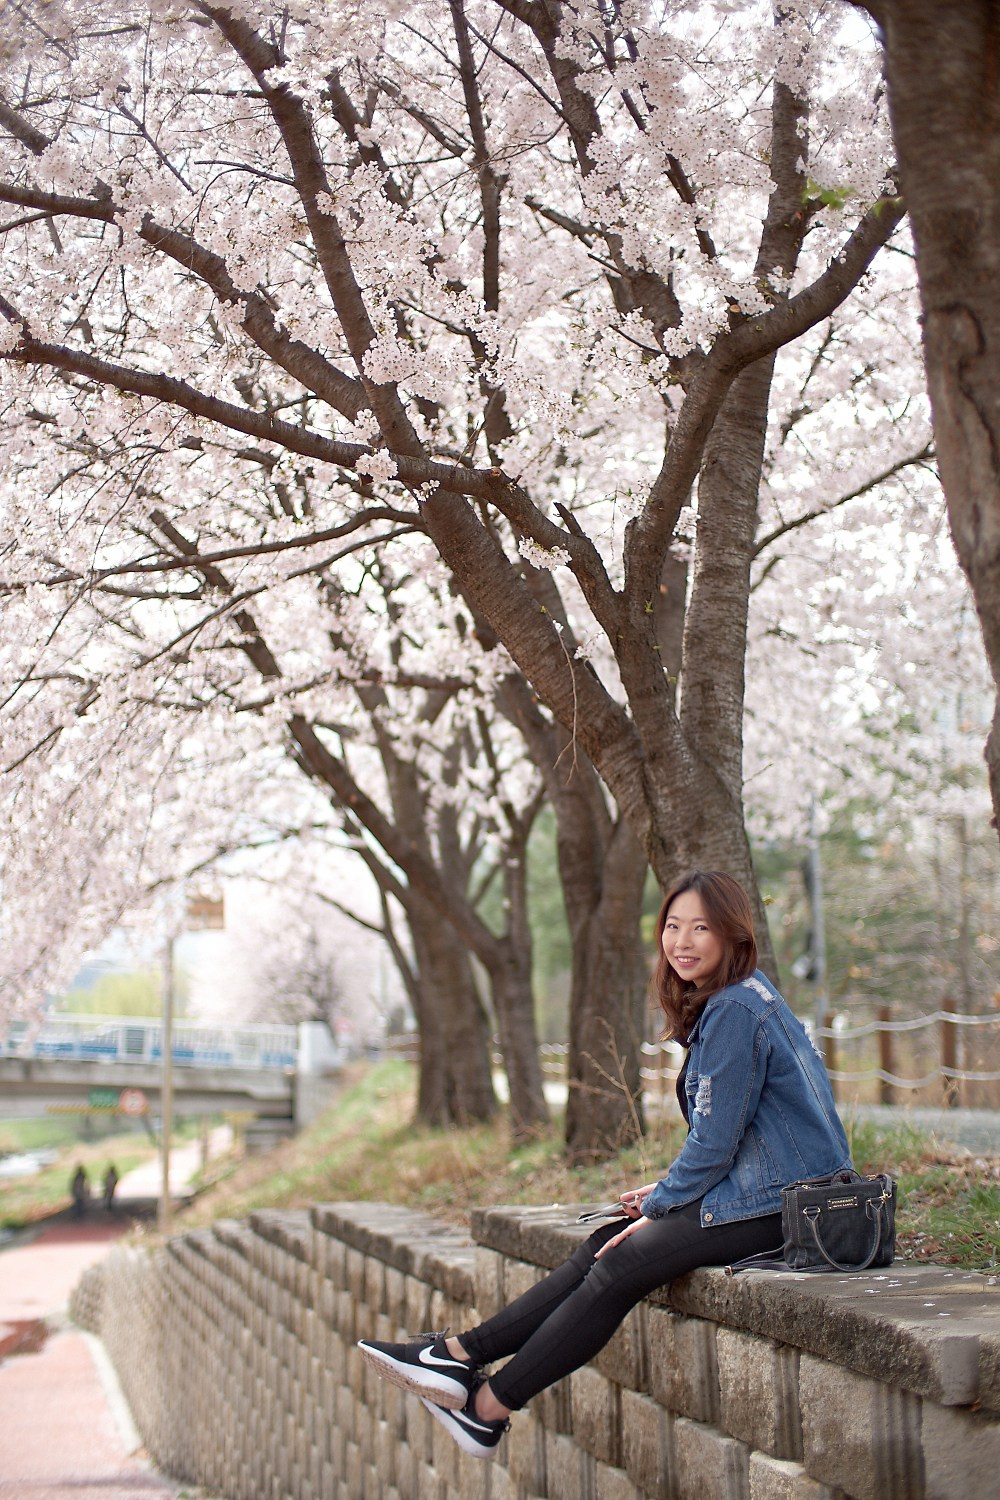 Portrait photo in Seoul, South Korea during spring.